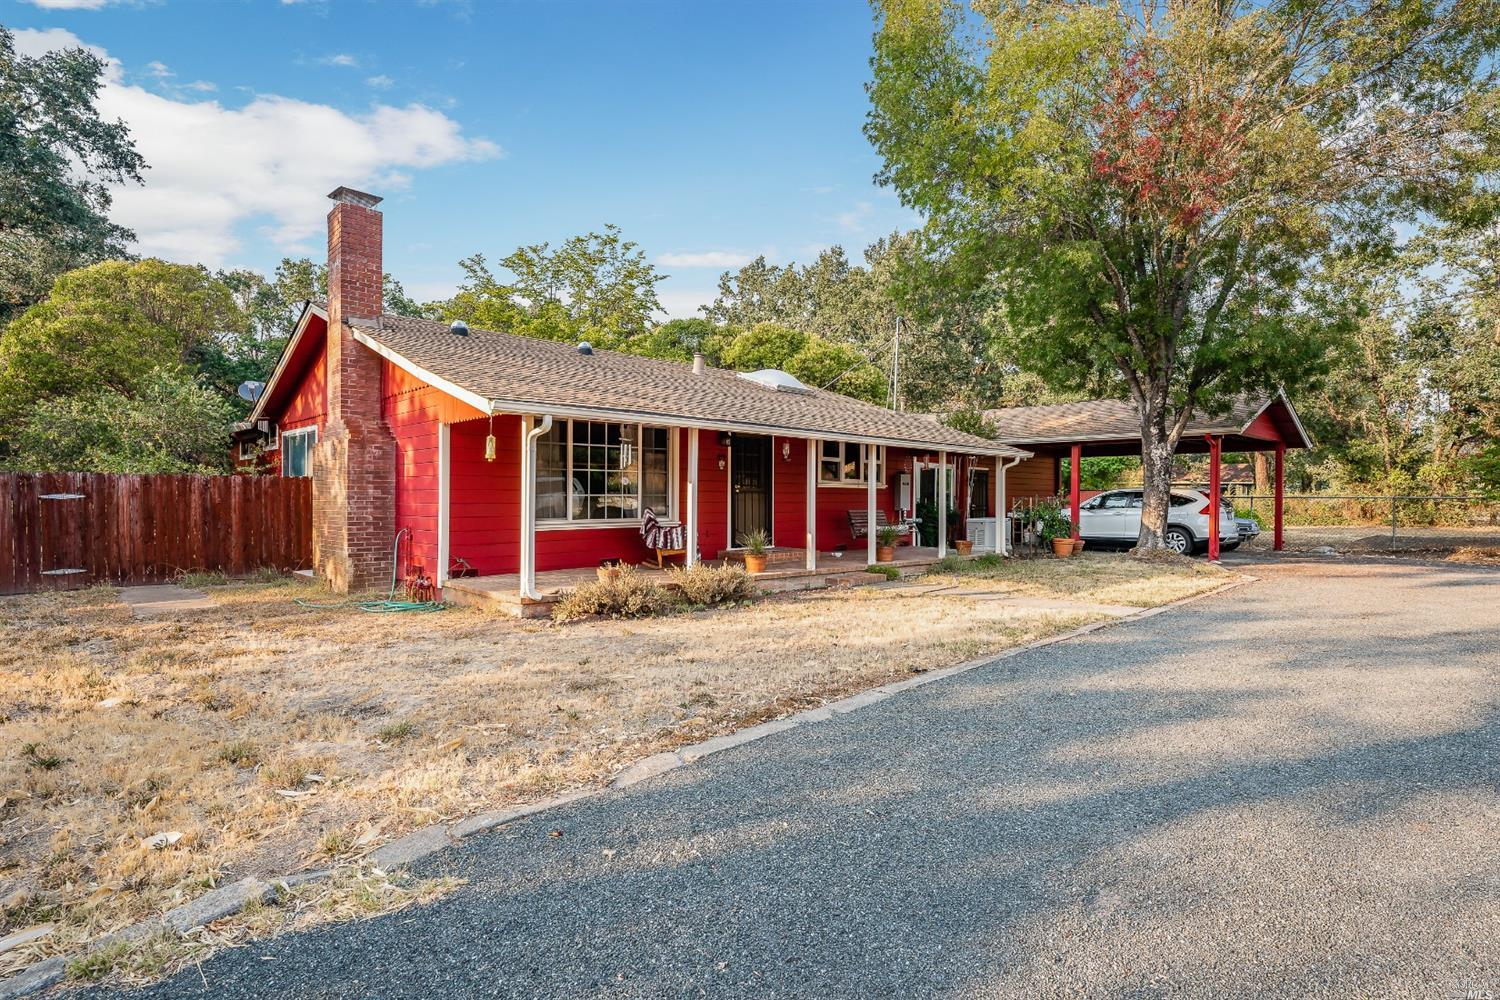 8500 E Side Potter Valley Road, Potter Valley, CA 95469